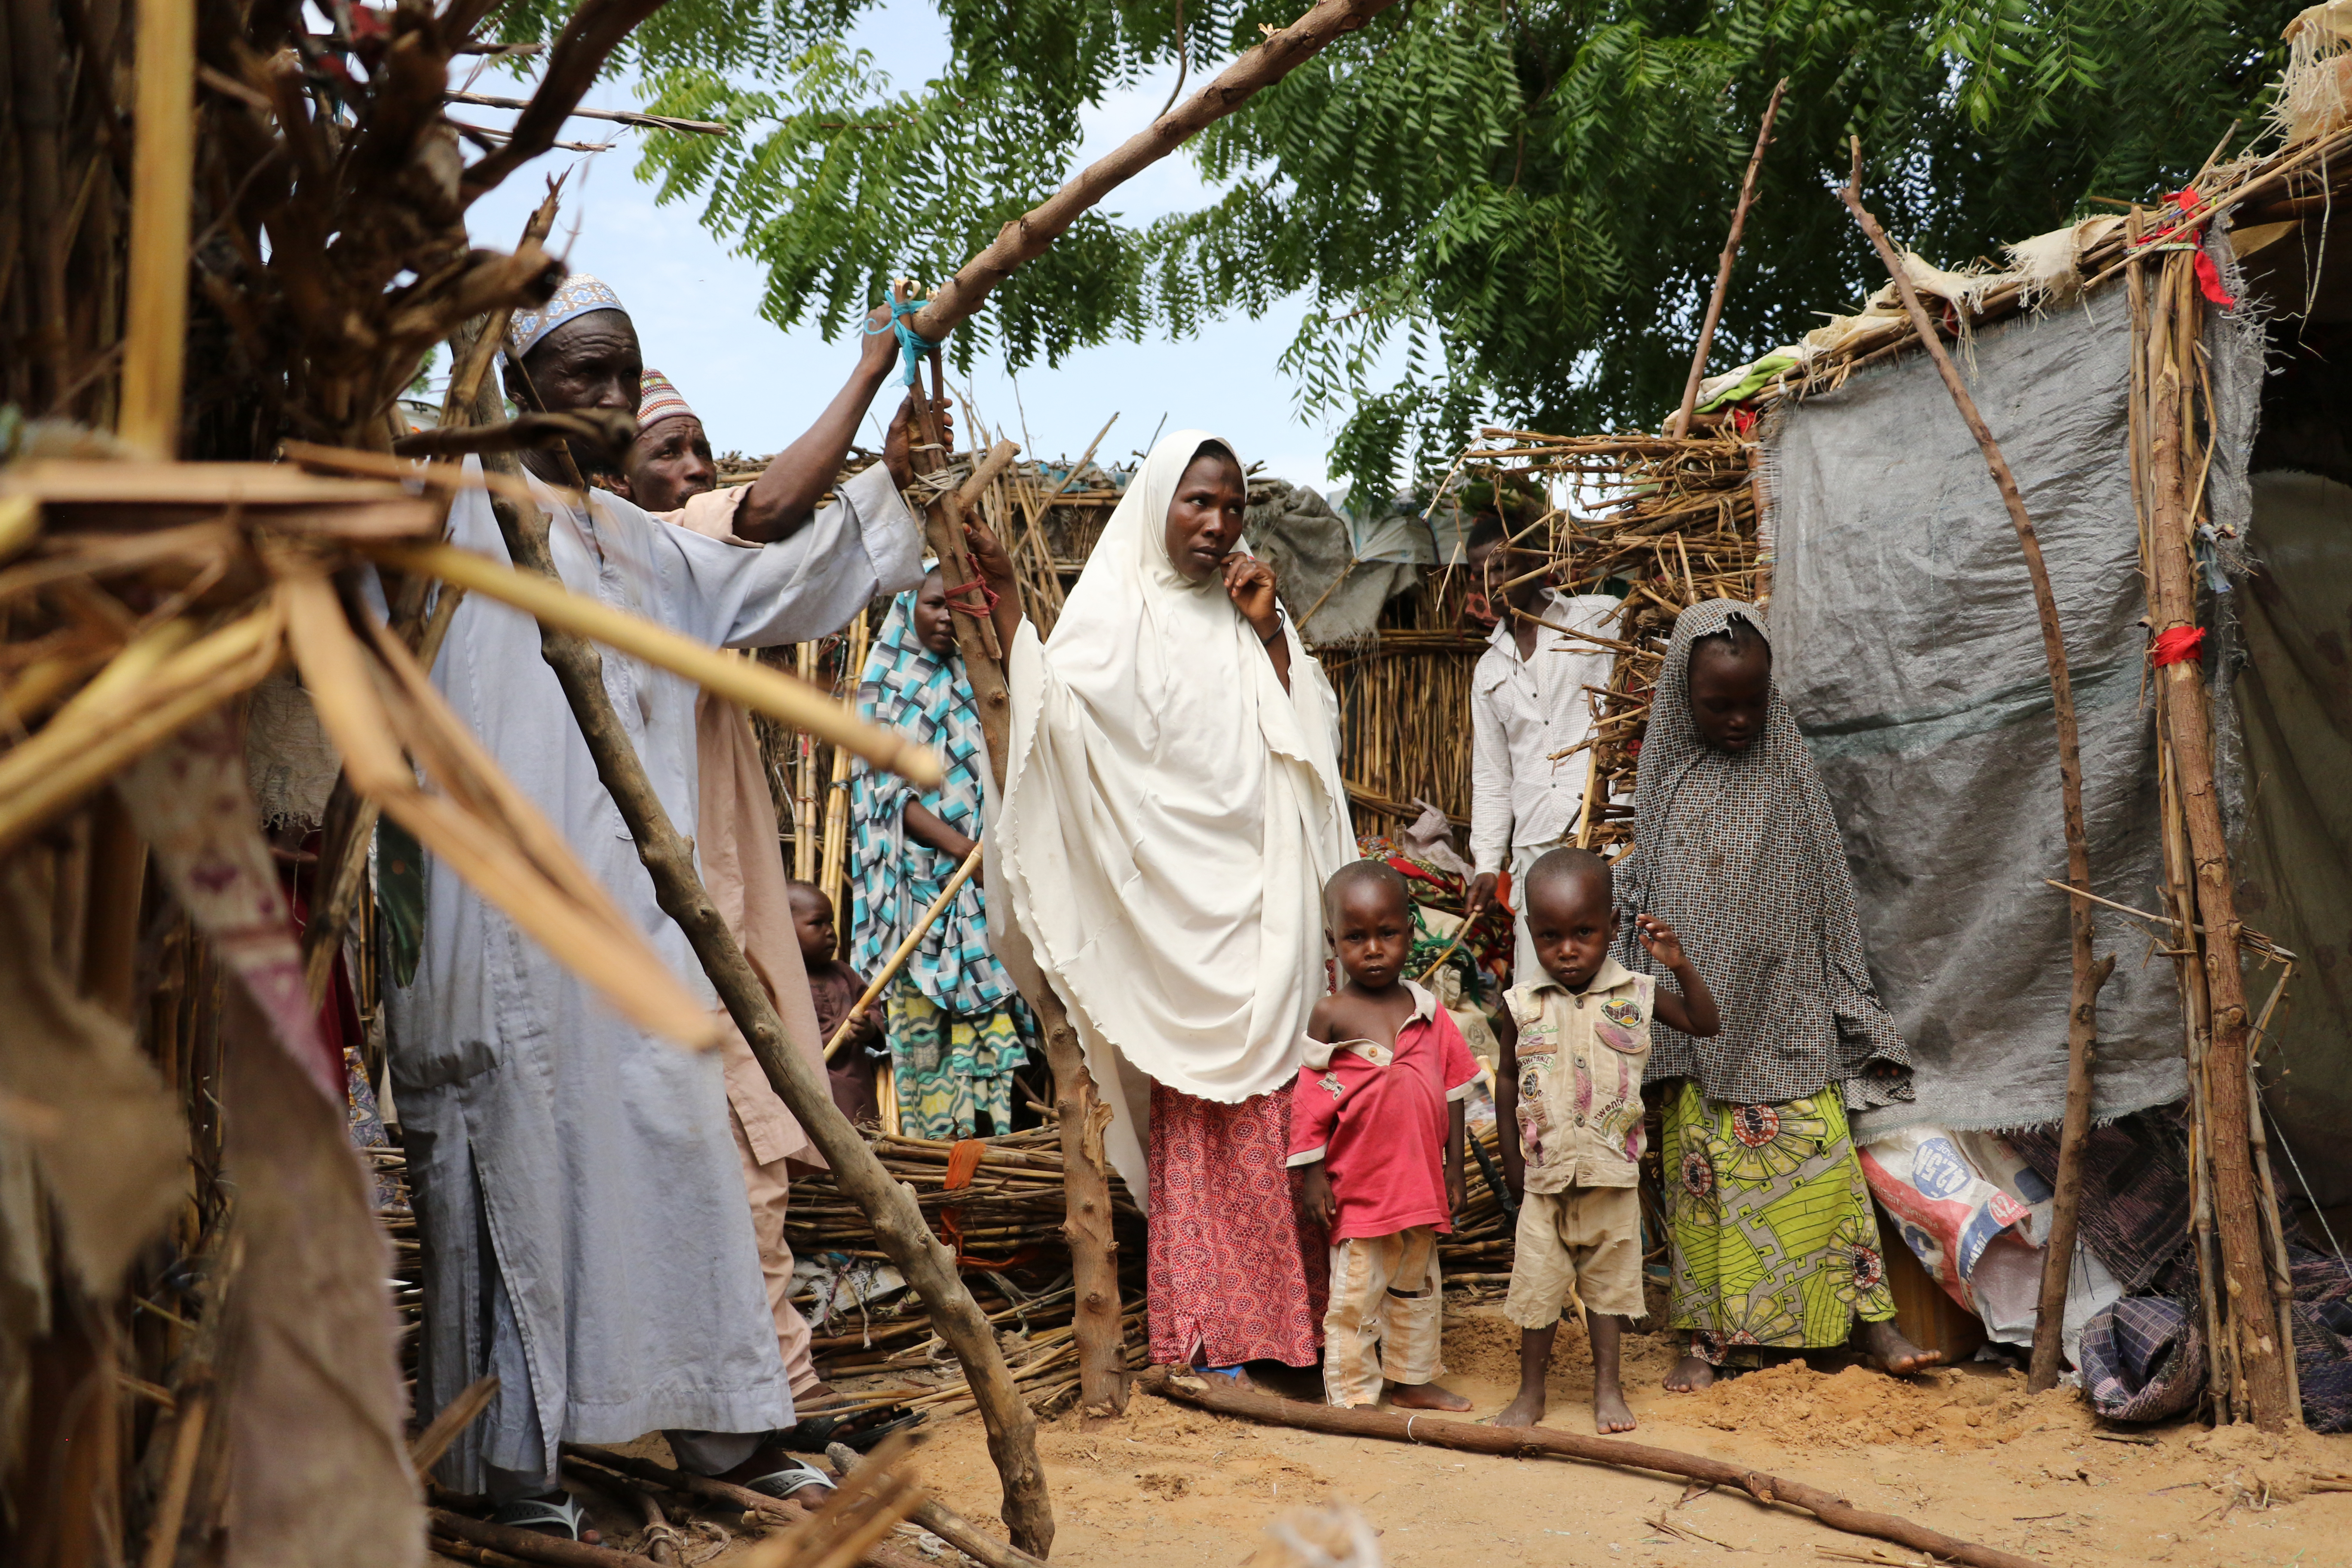 IOM Director General William Lacy Swing spent three days meeting with some of the internally displaced at camps and in communities in the hardest hit areas of Borno state, the epicentre of the conflict. IOM's emergency response is based in Maiduguri, the capital of Borno and the birthplace of Boko Haram.